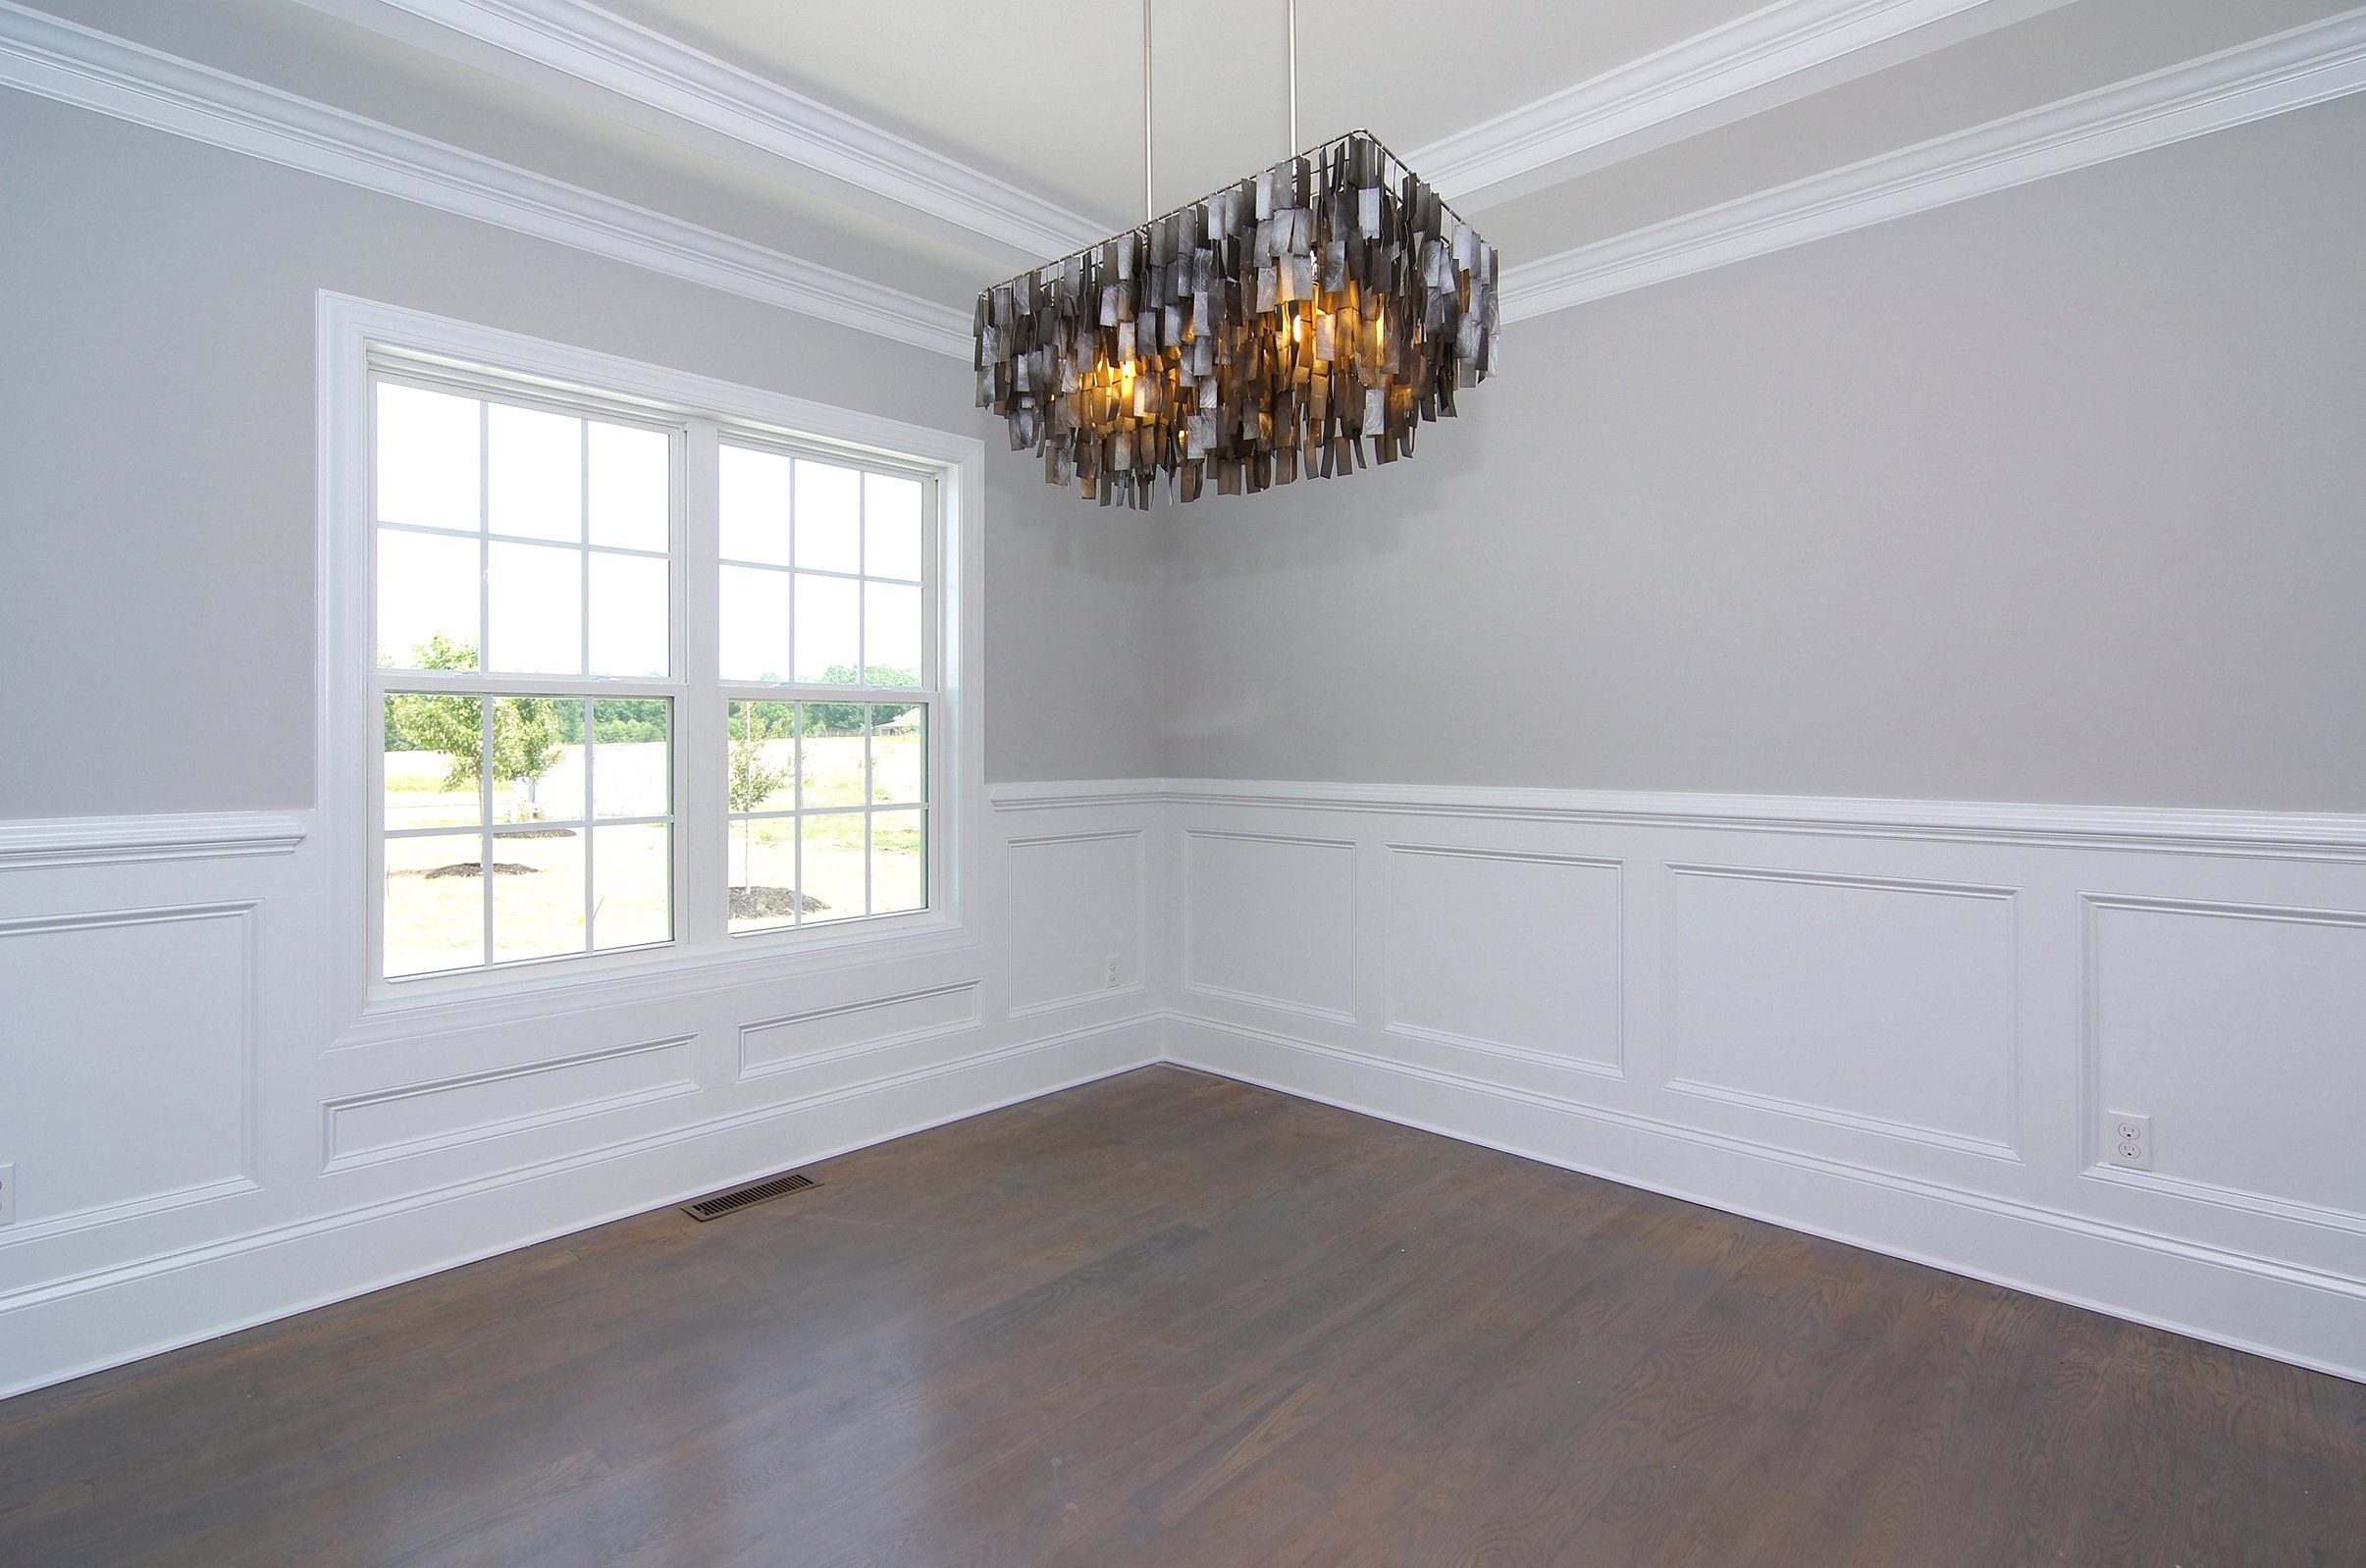 Sherwin williams light french gray - Fleur paint ...